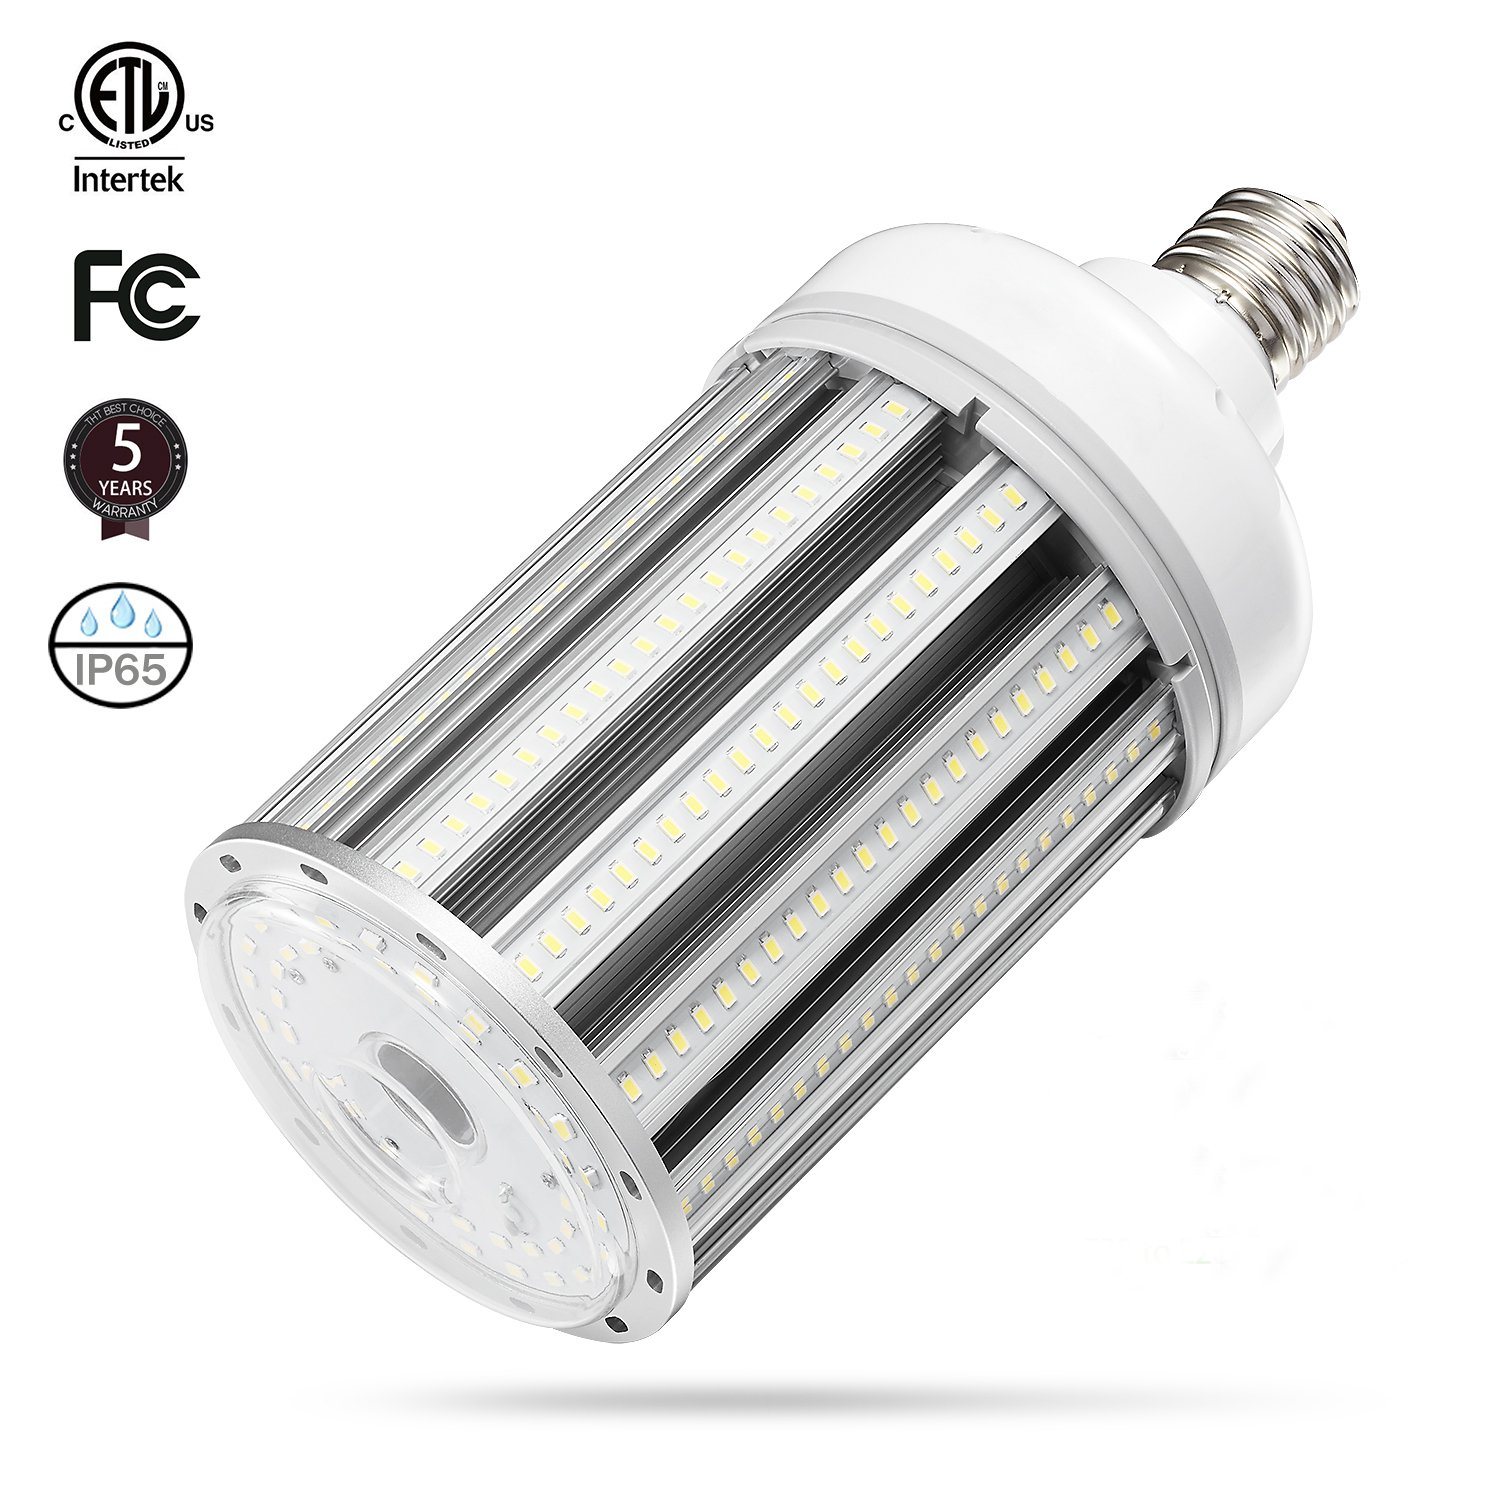 120w Led Corn cob Light Bulb E39 Base, 5000K 15600lm AC100-277V,CFL HID HPS Metal Halide(500w) Replacement for Street and Area Light Factory Warehouse High Bay Work Light Parking Lot Super